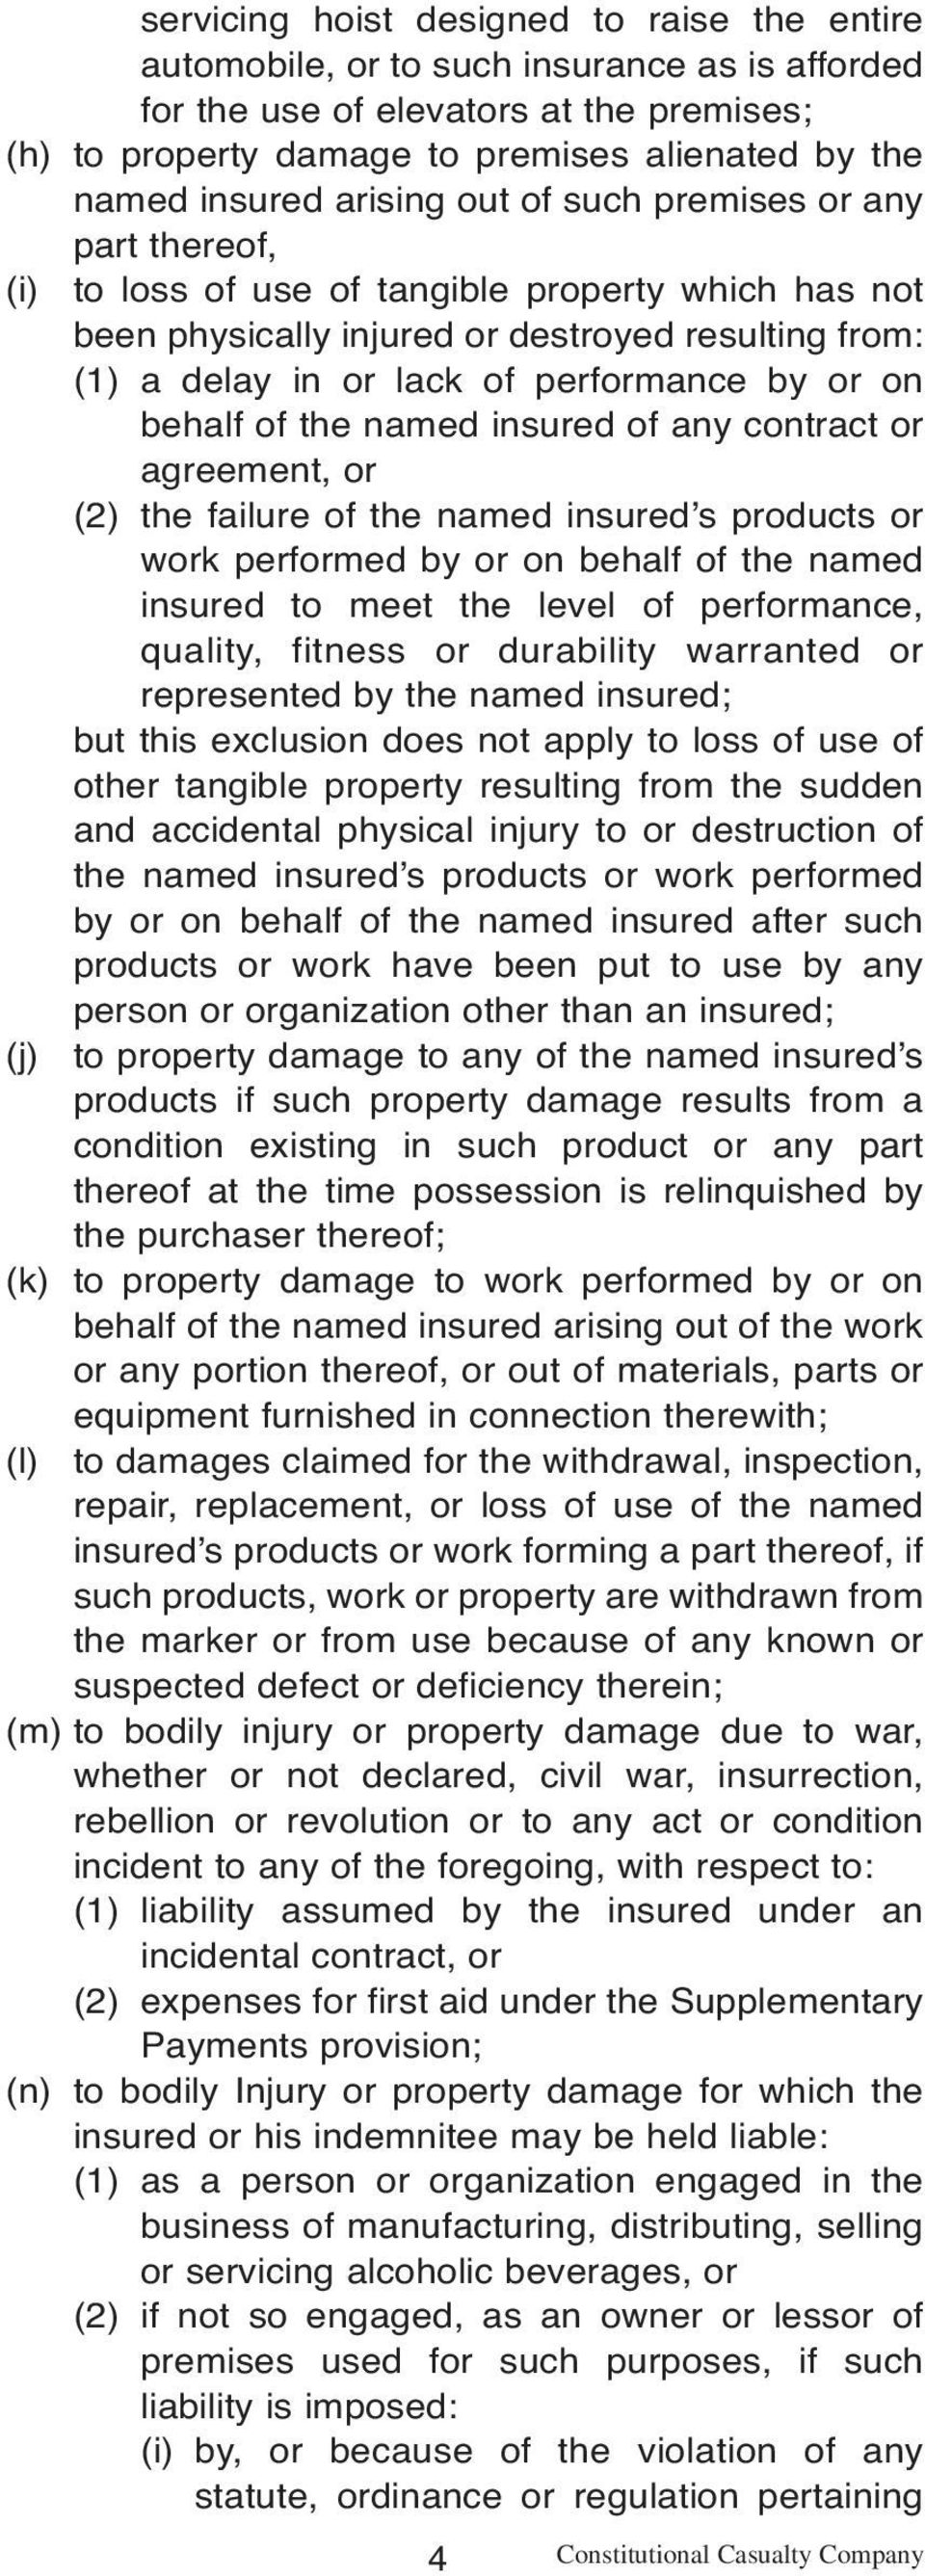 performance by or on behalf of the named insured of any contract or agreement, or (2) the failure of the named insured s products or work performed by or on behalf of the named insured to meet the